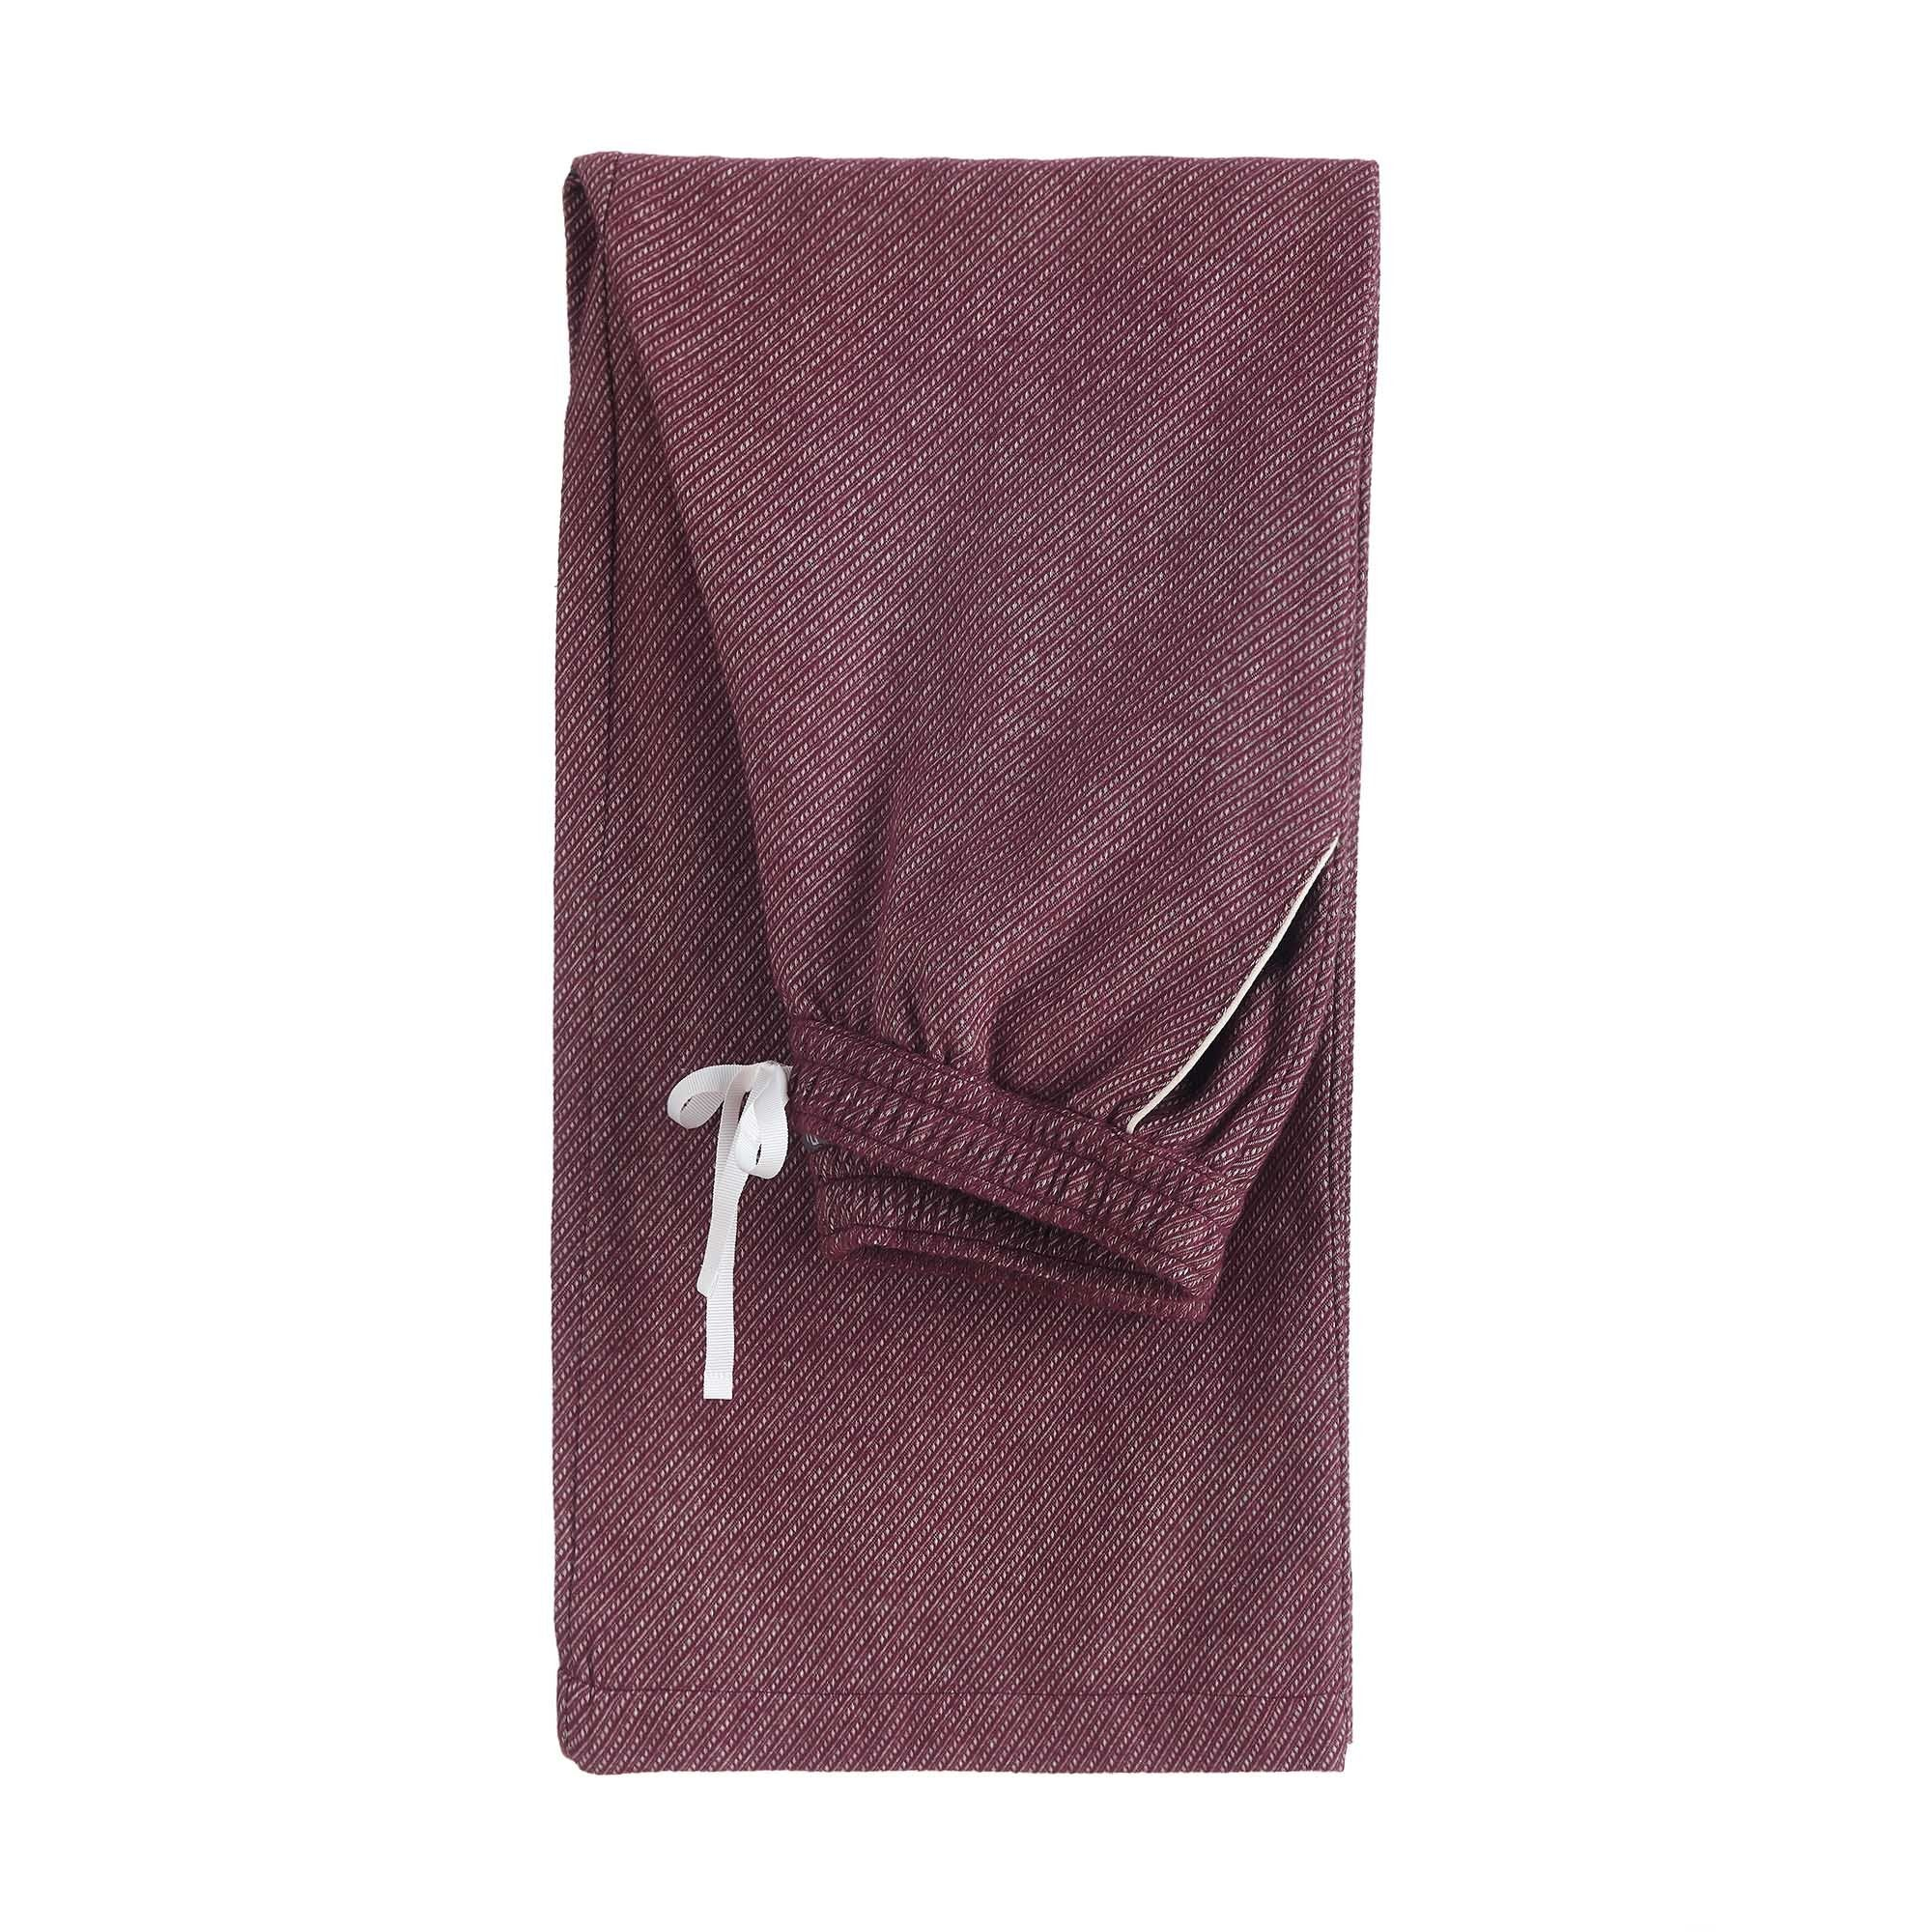 Bordeaux red & Natural white Coja Pyjama | Home & Living inspiration | URBANARA